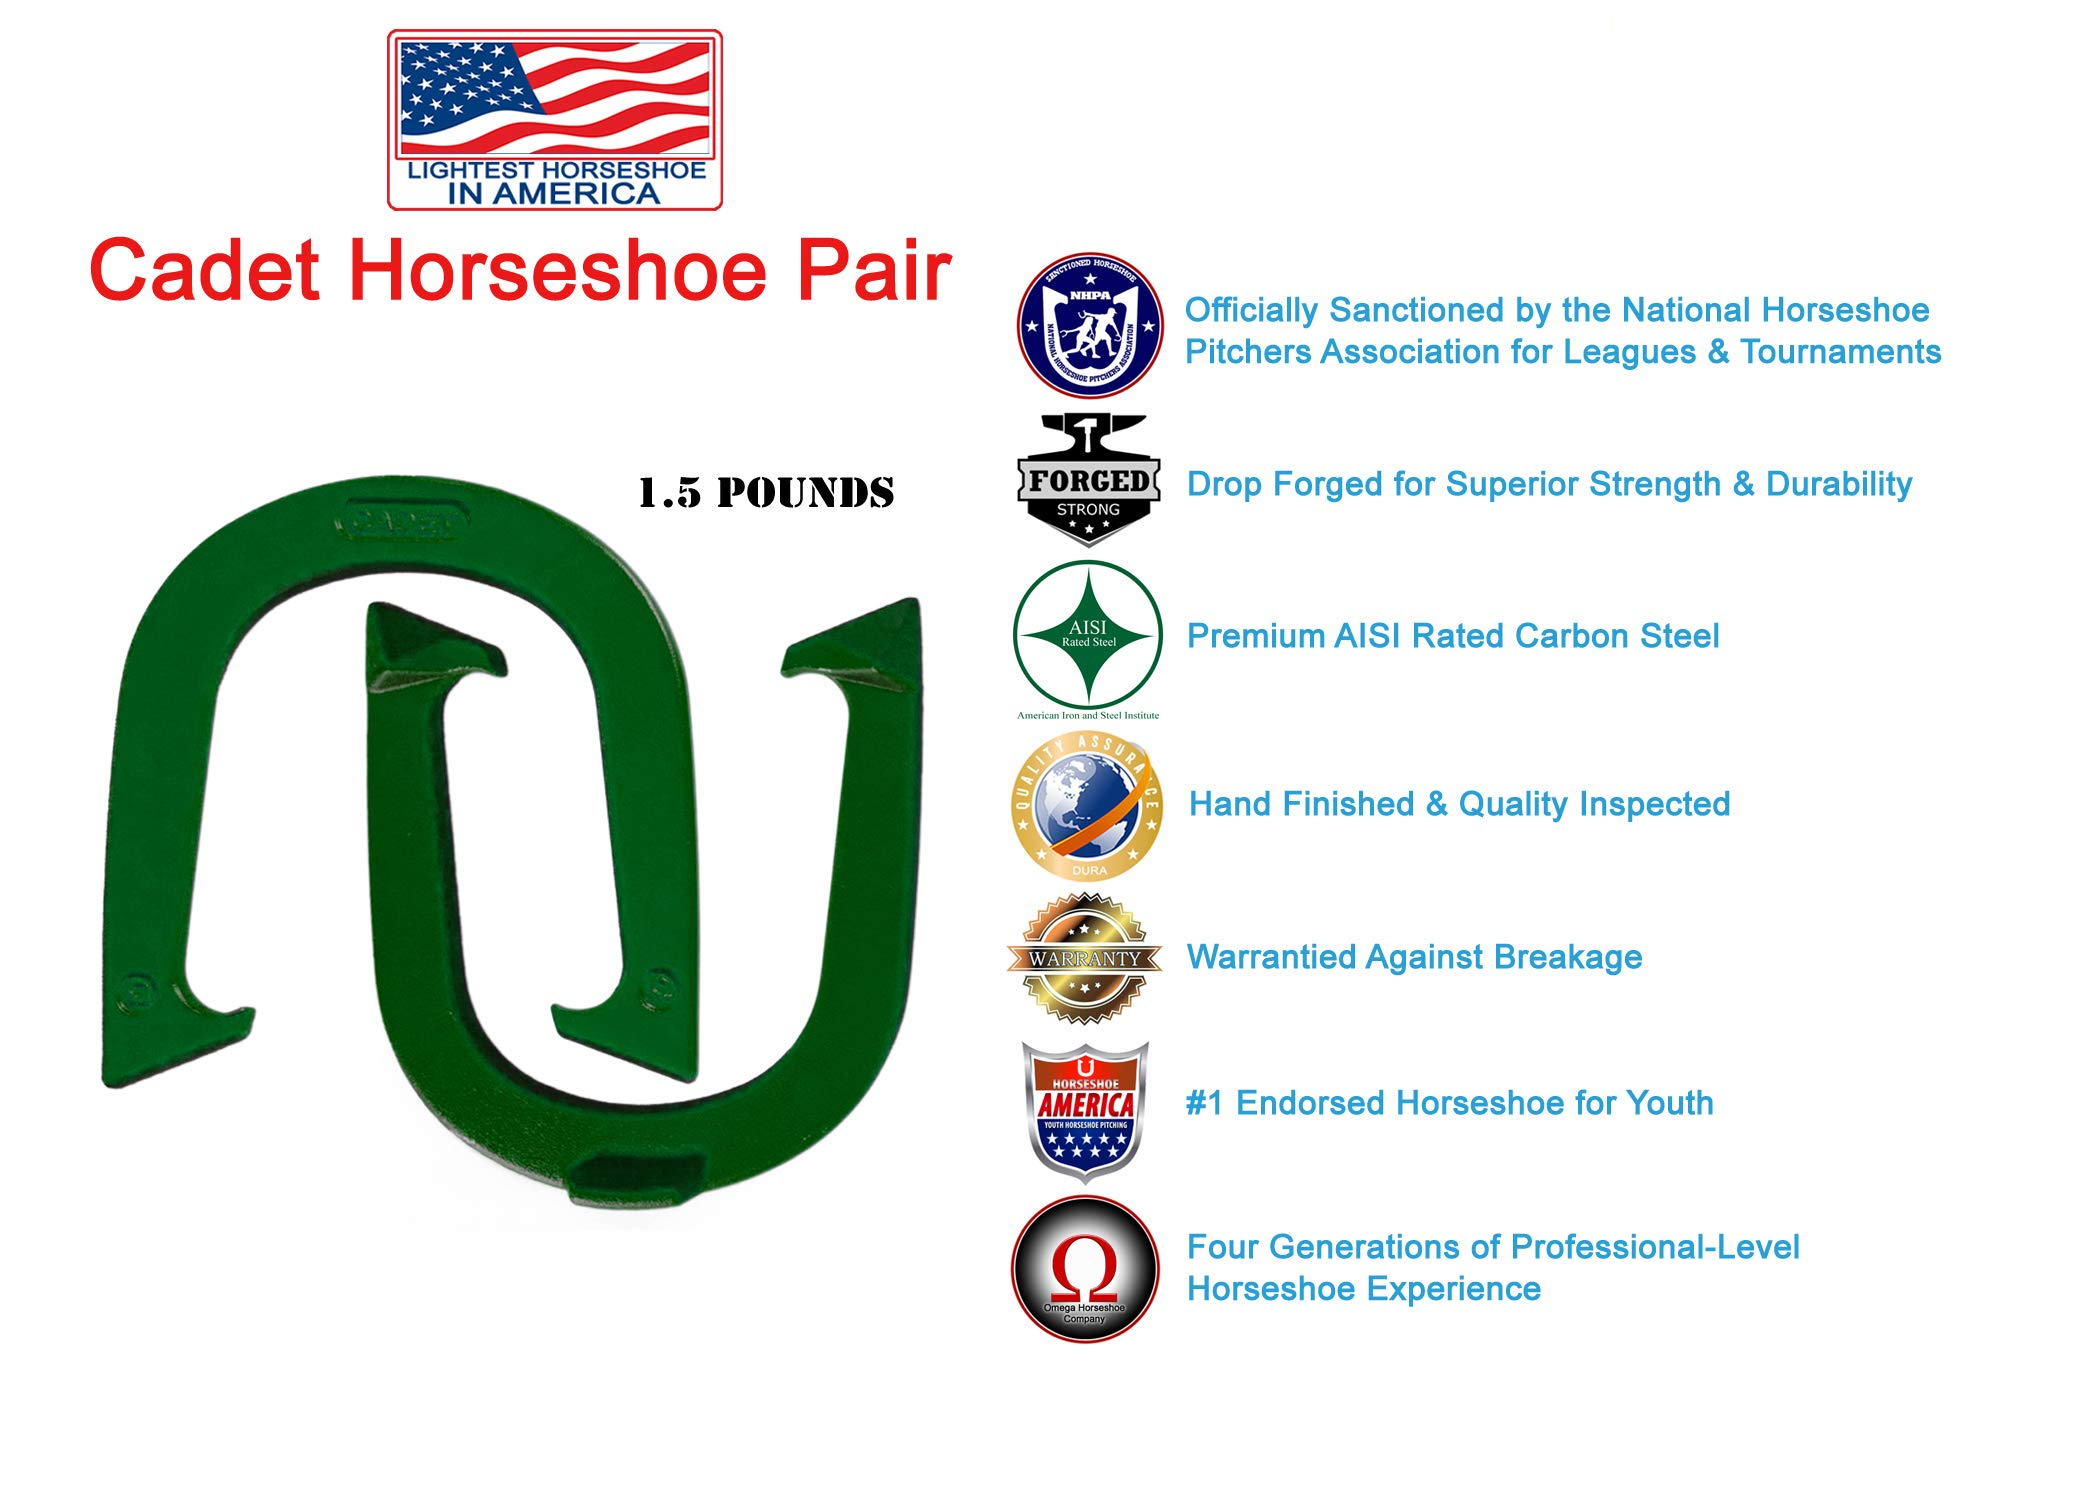 Light Weight Cadet Pitching Horseshoes - Green Finish - NHPA Sanctioned for Tournament Play - Drop Forged Steel - One Pair (2 Shoes)